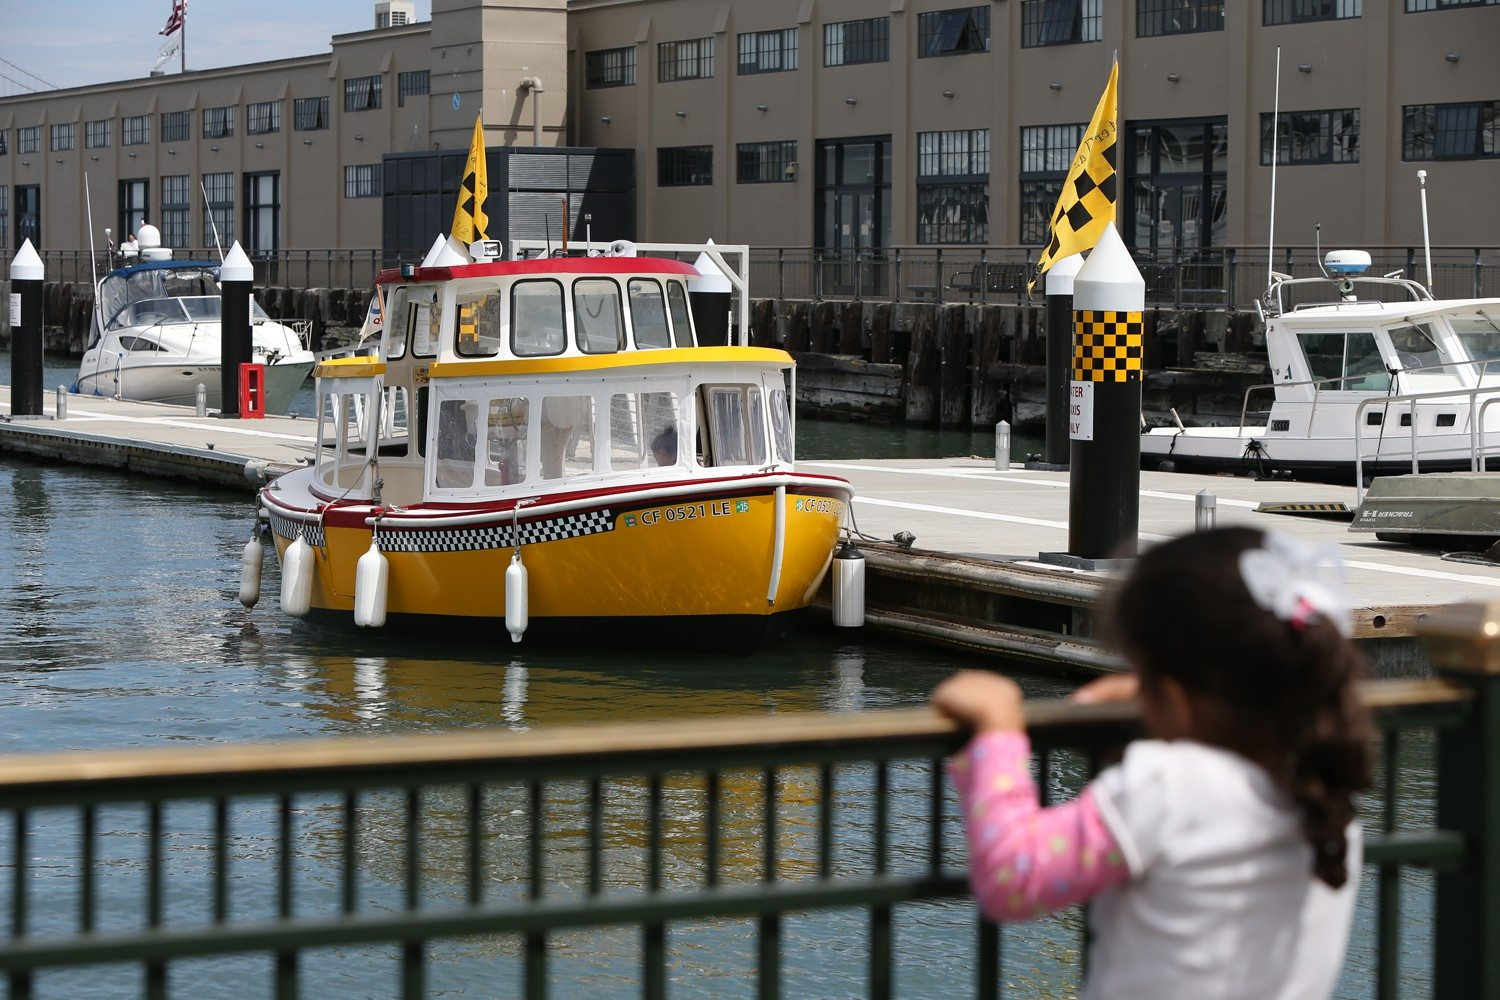 mike koozmin/the s.f. examinerMontgomery George captains the Lil' Taxi water taxi.